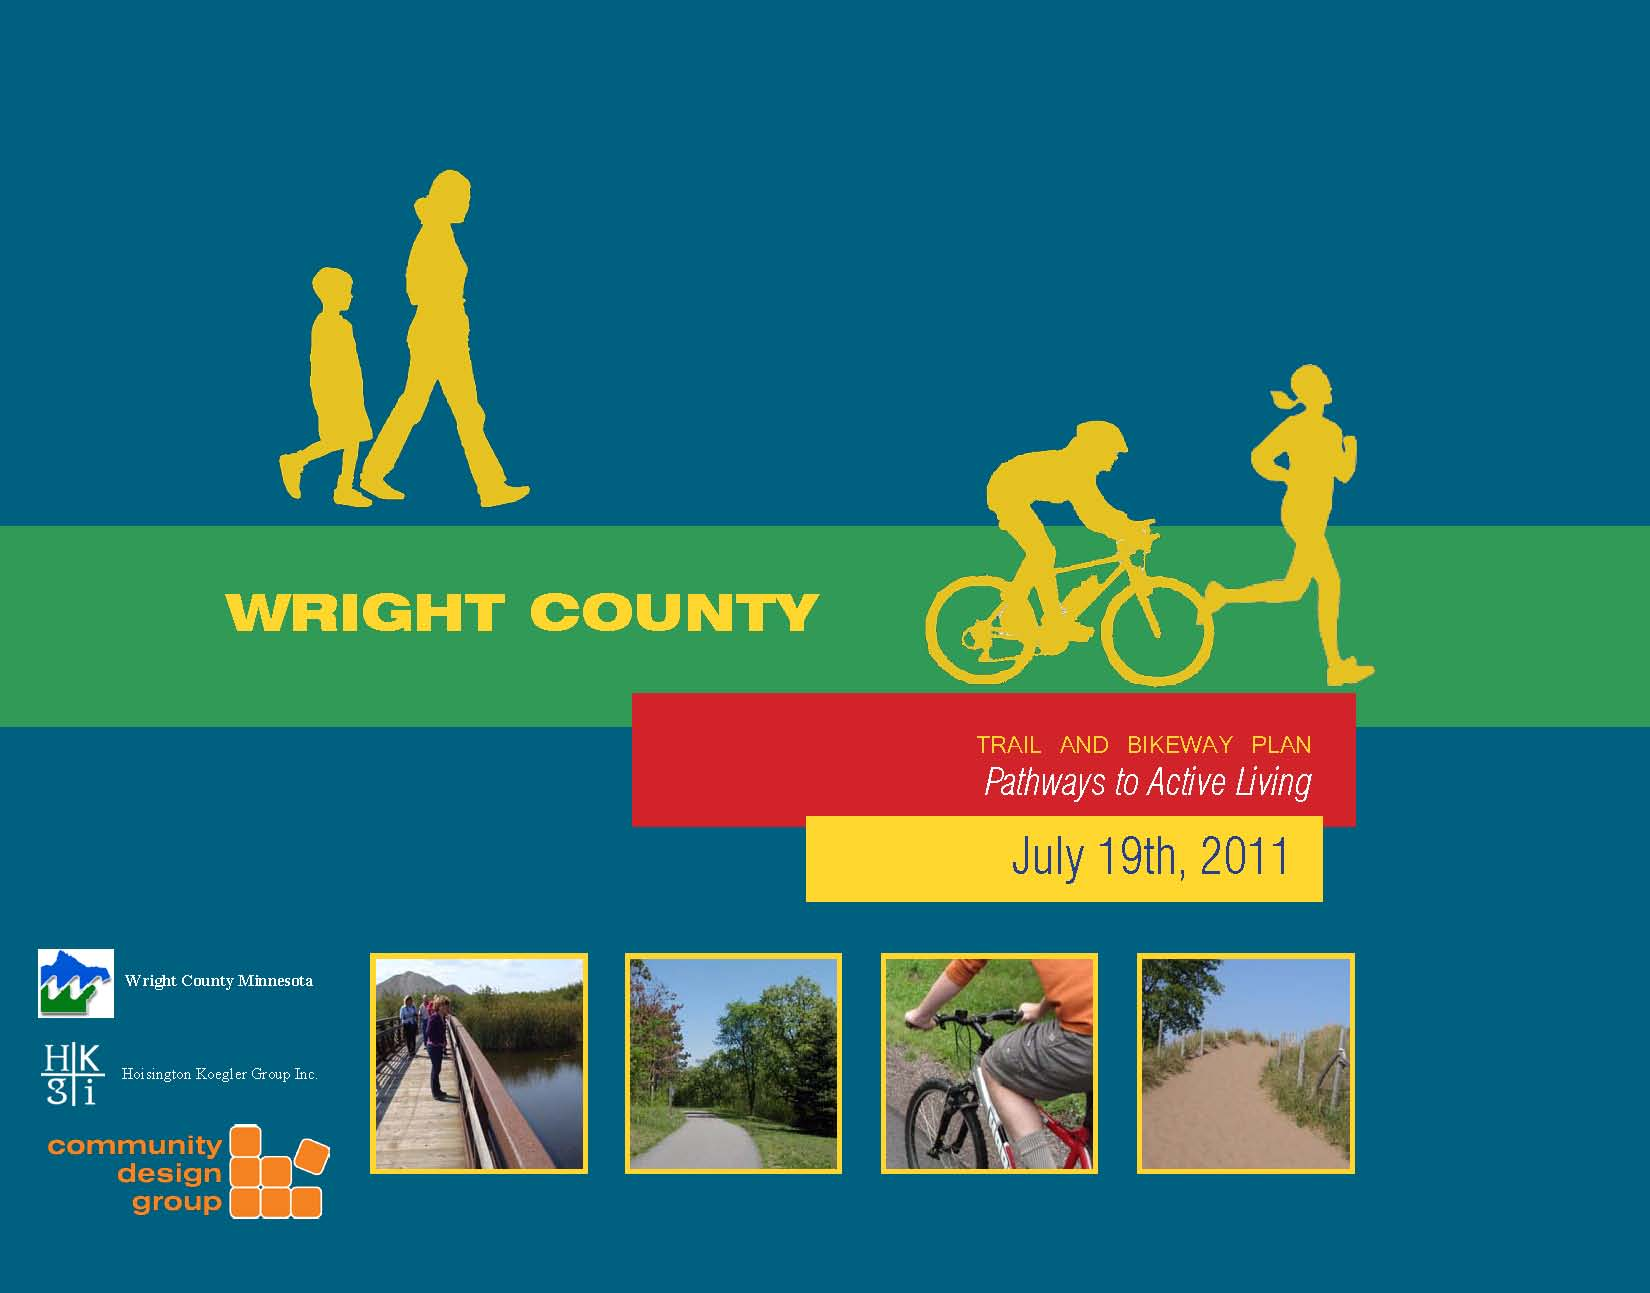 Wright County Trail and Bikeway Plan 1